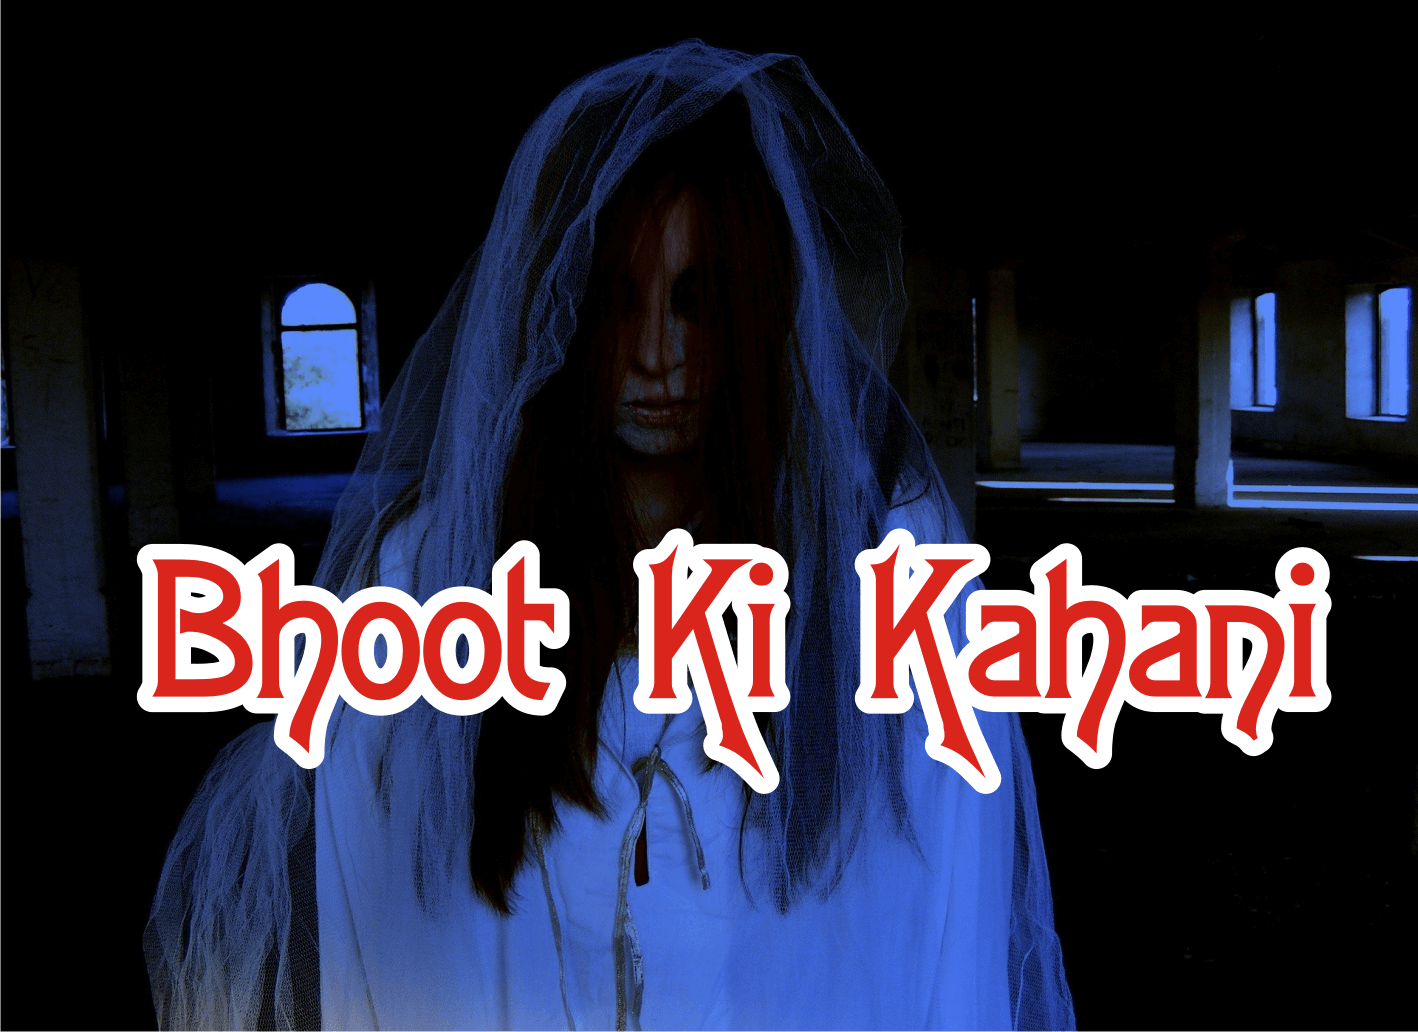 bhoot-ki-kahani--in-hindi